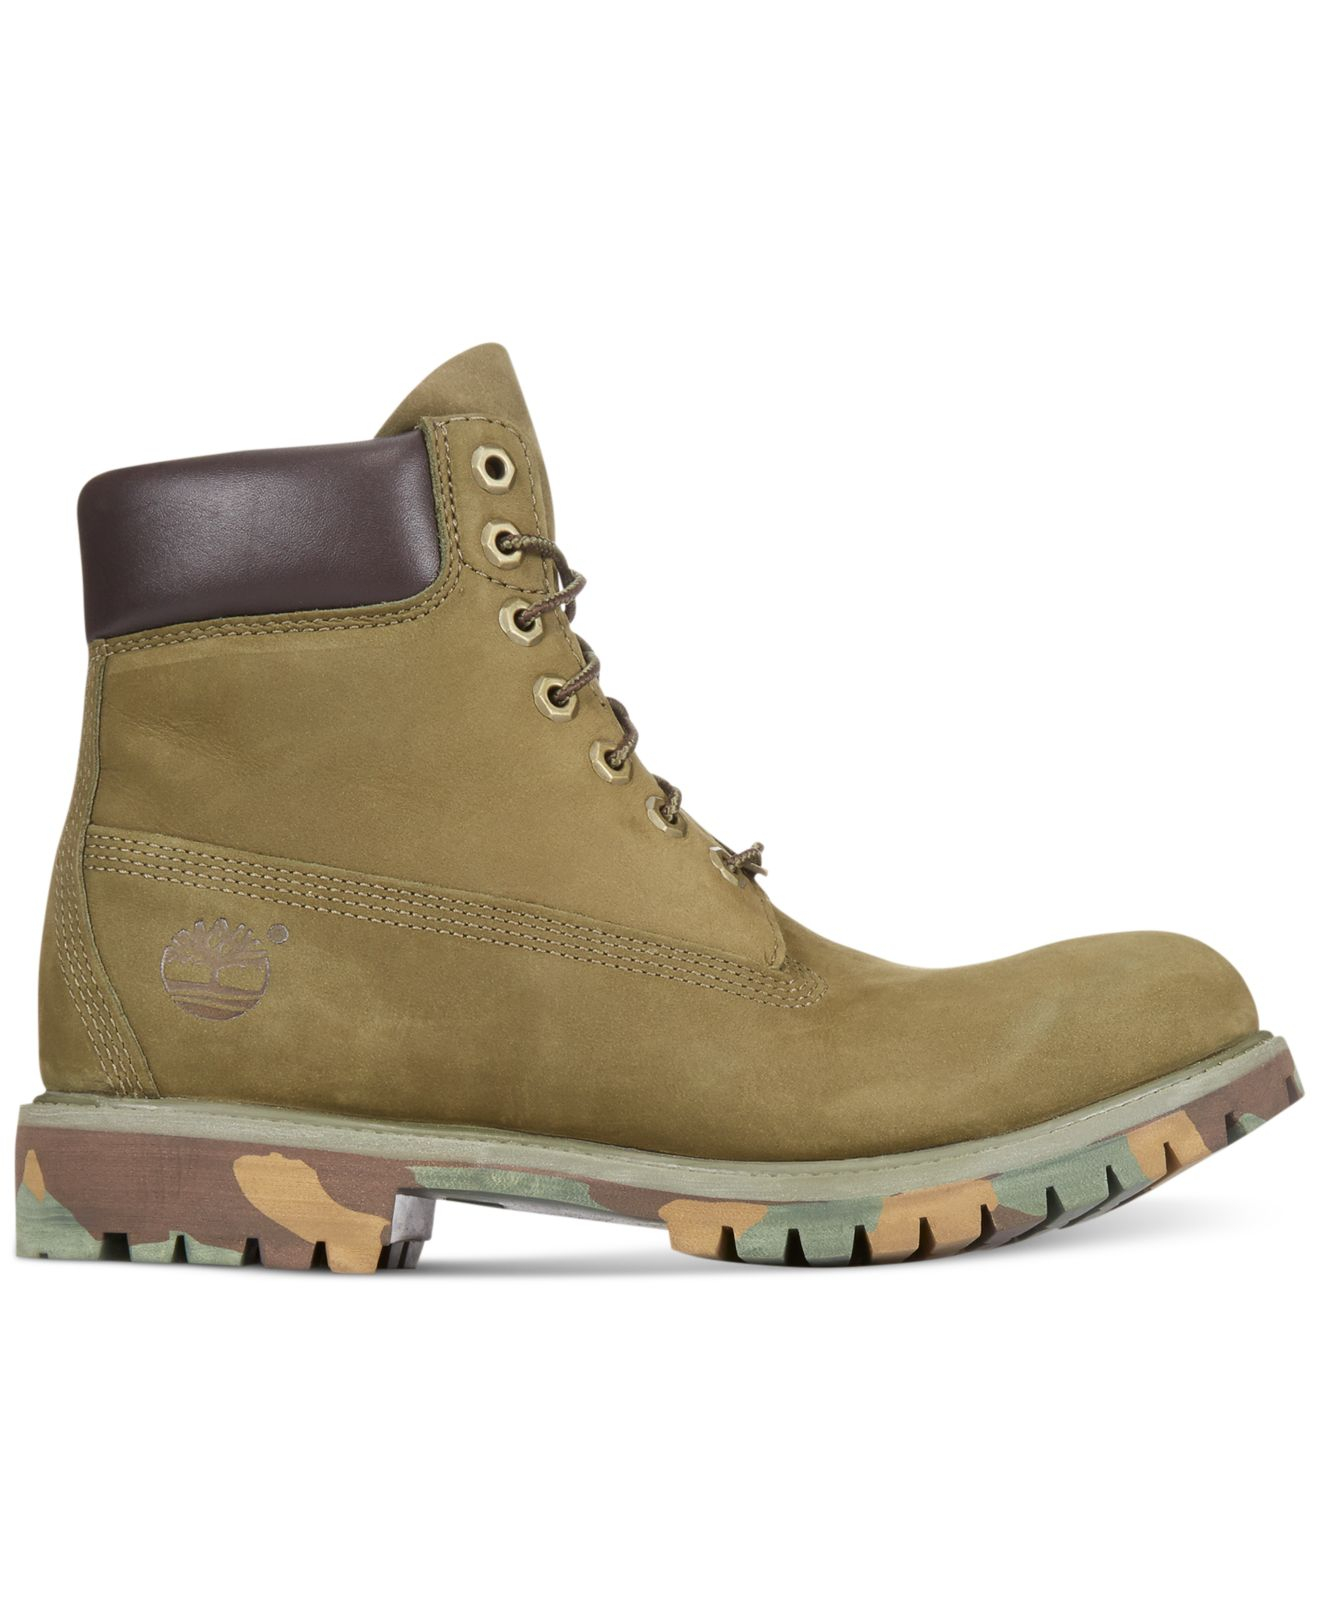 Beautiful Buy Timberland Women 6 Inch Boots Army Green Grey S5619 Outlet Online Shop